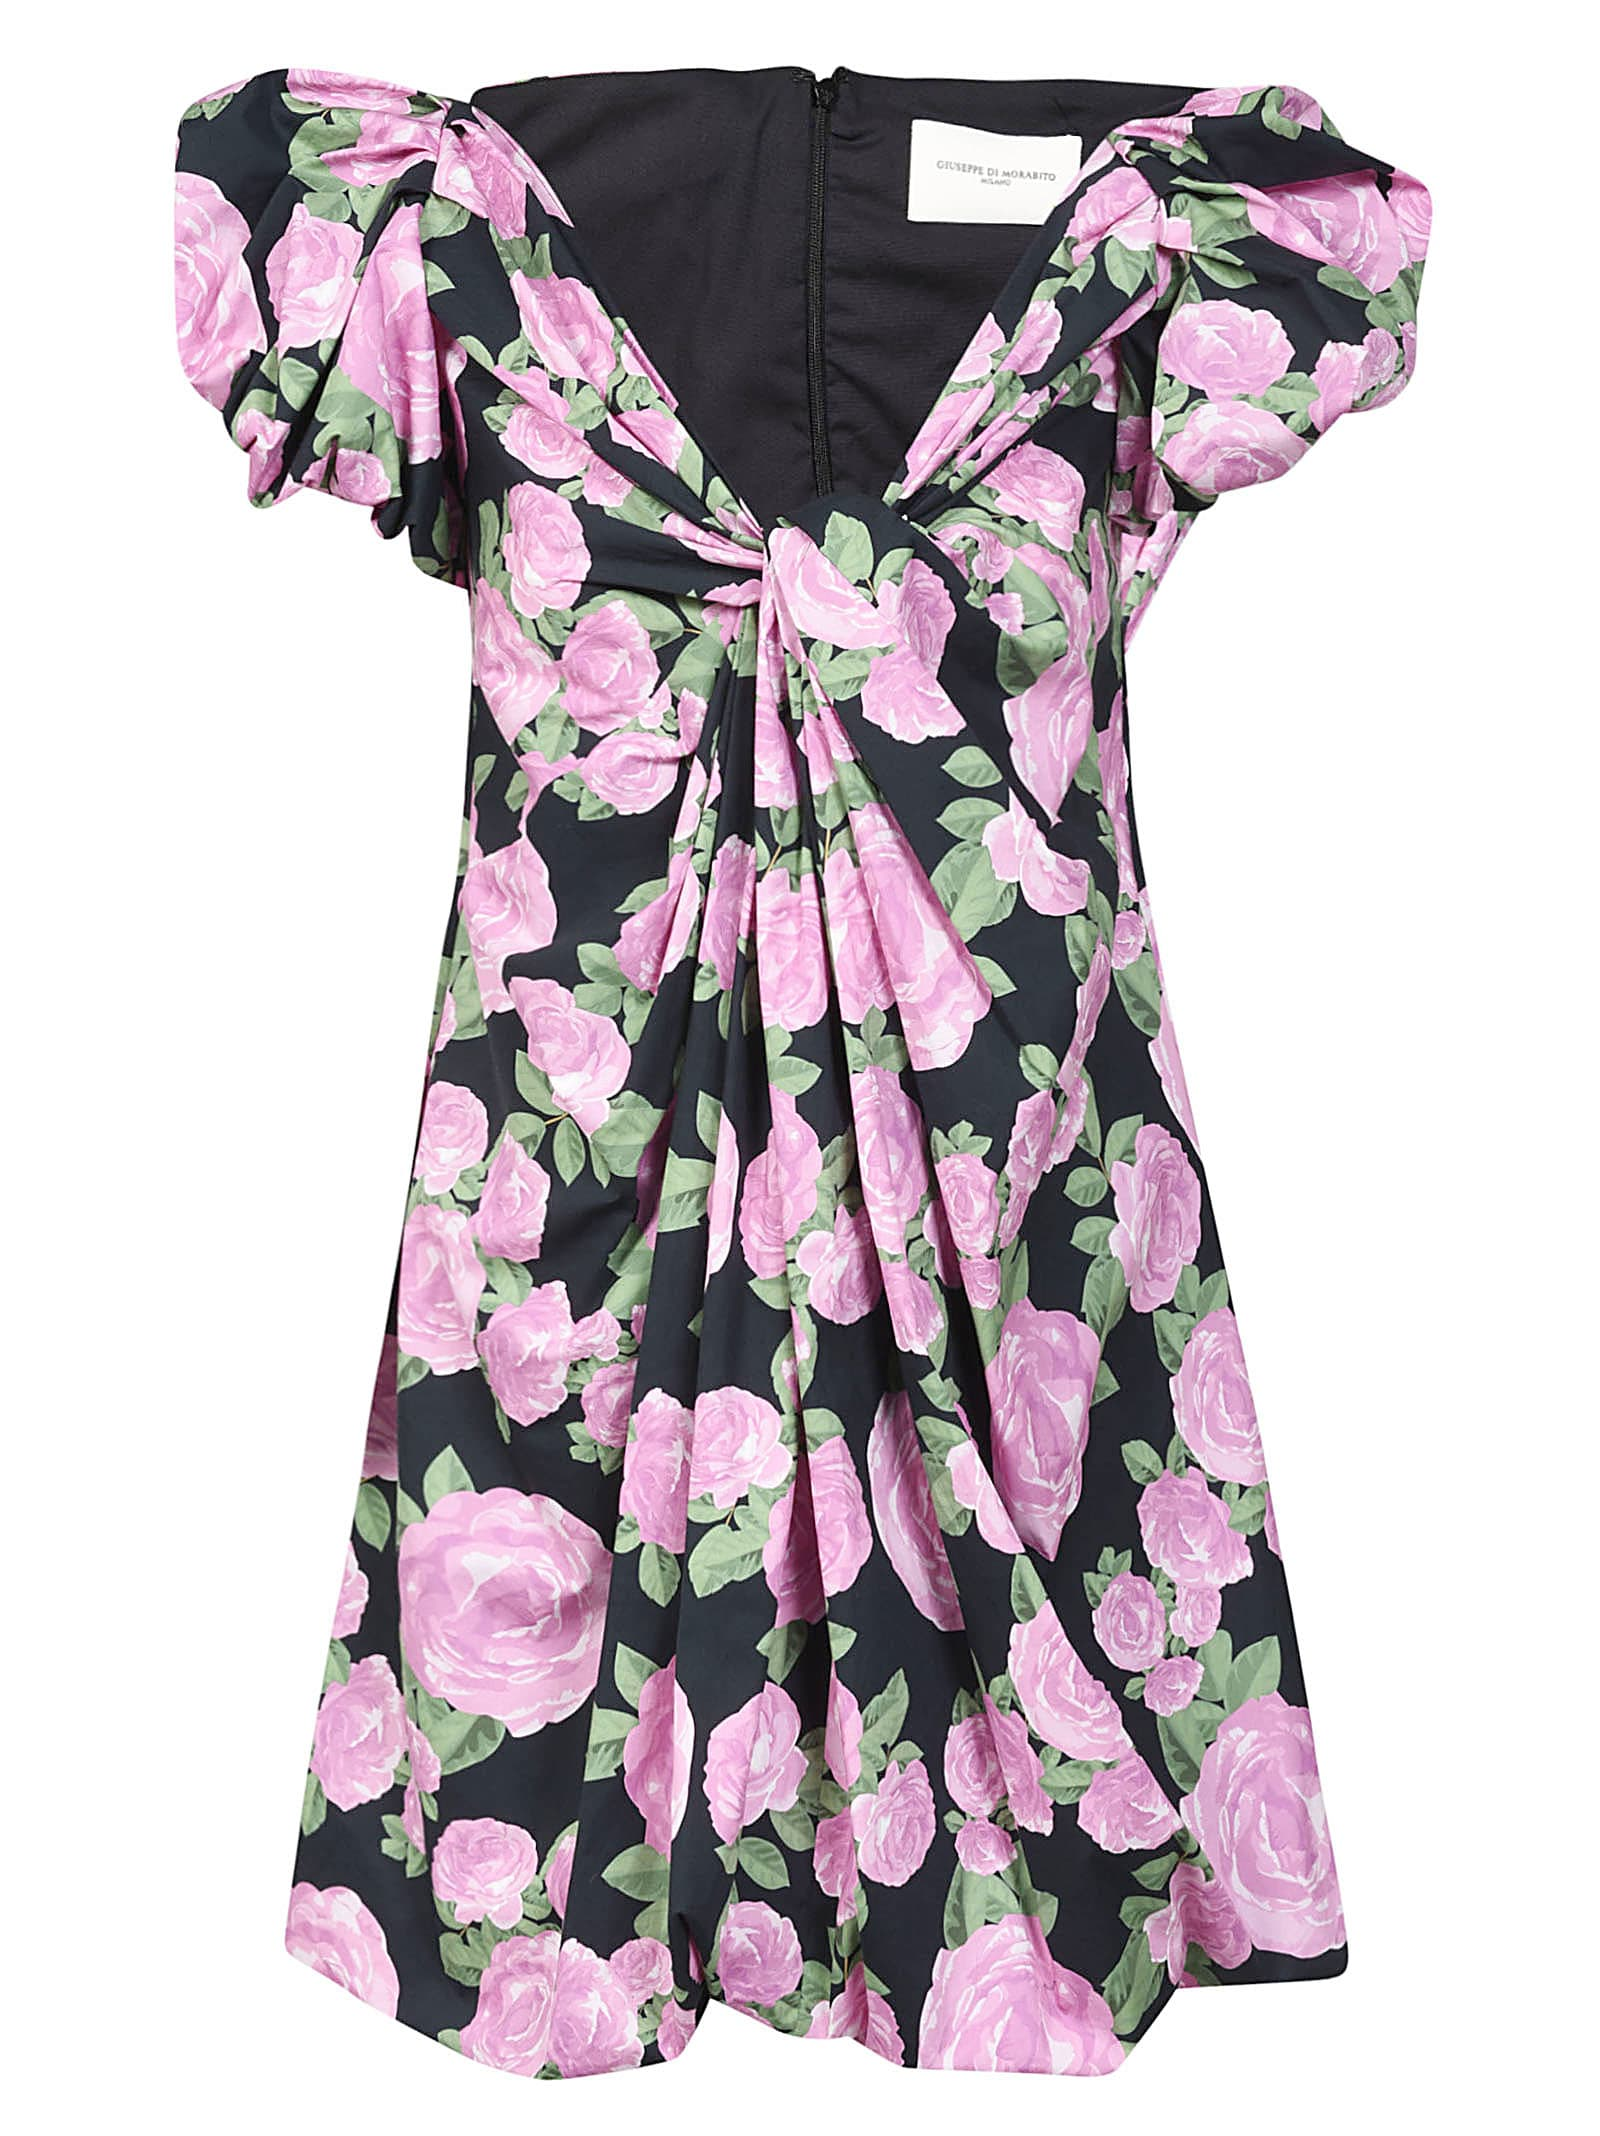 Buy Giuseppe di Morabito Floral Gathered Dress online, shop Giuseppe di Morabito with free shipping